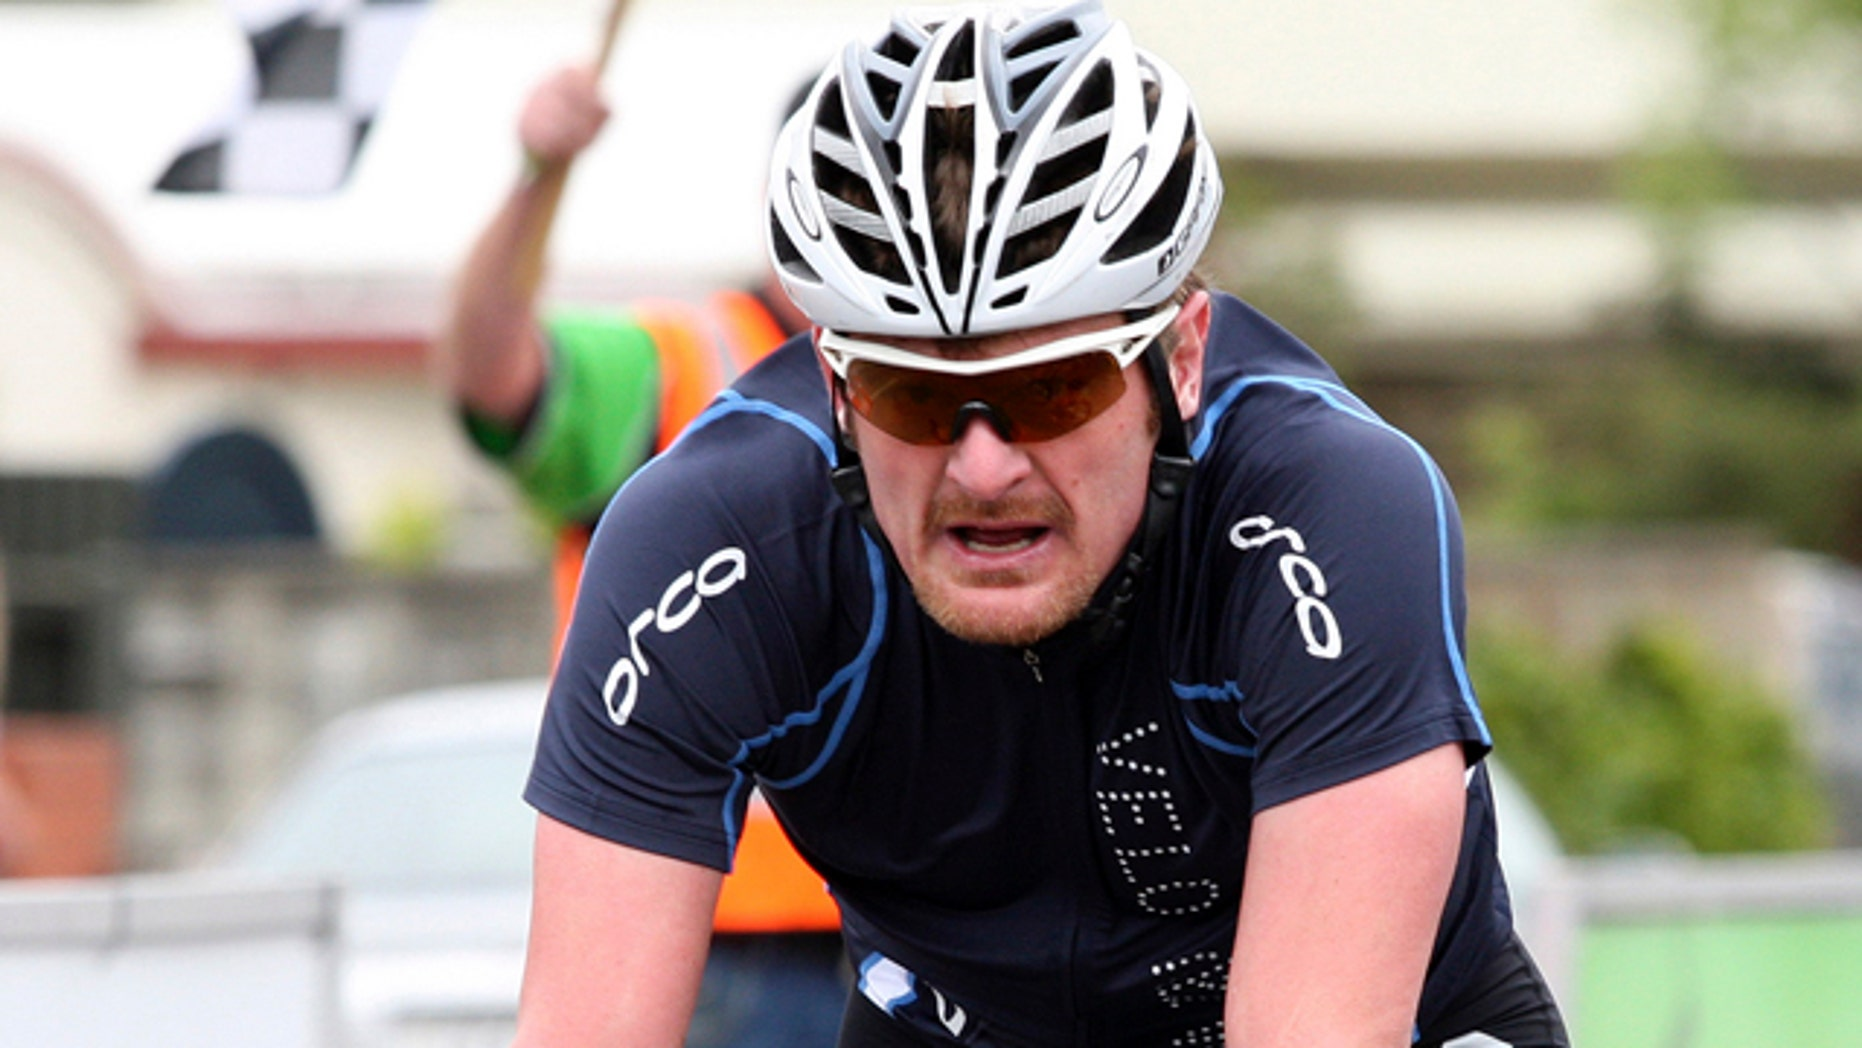 Nov. 1: Orca Velo Merino's Floyd Landis of the U.S. crosses the finish line in the team time trial, stage 1 of the PowerNet Tour of Southland cycling in Invercargill, New Zealand.